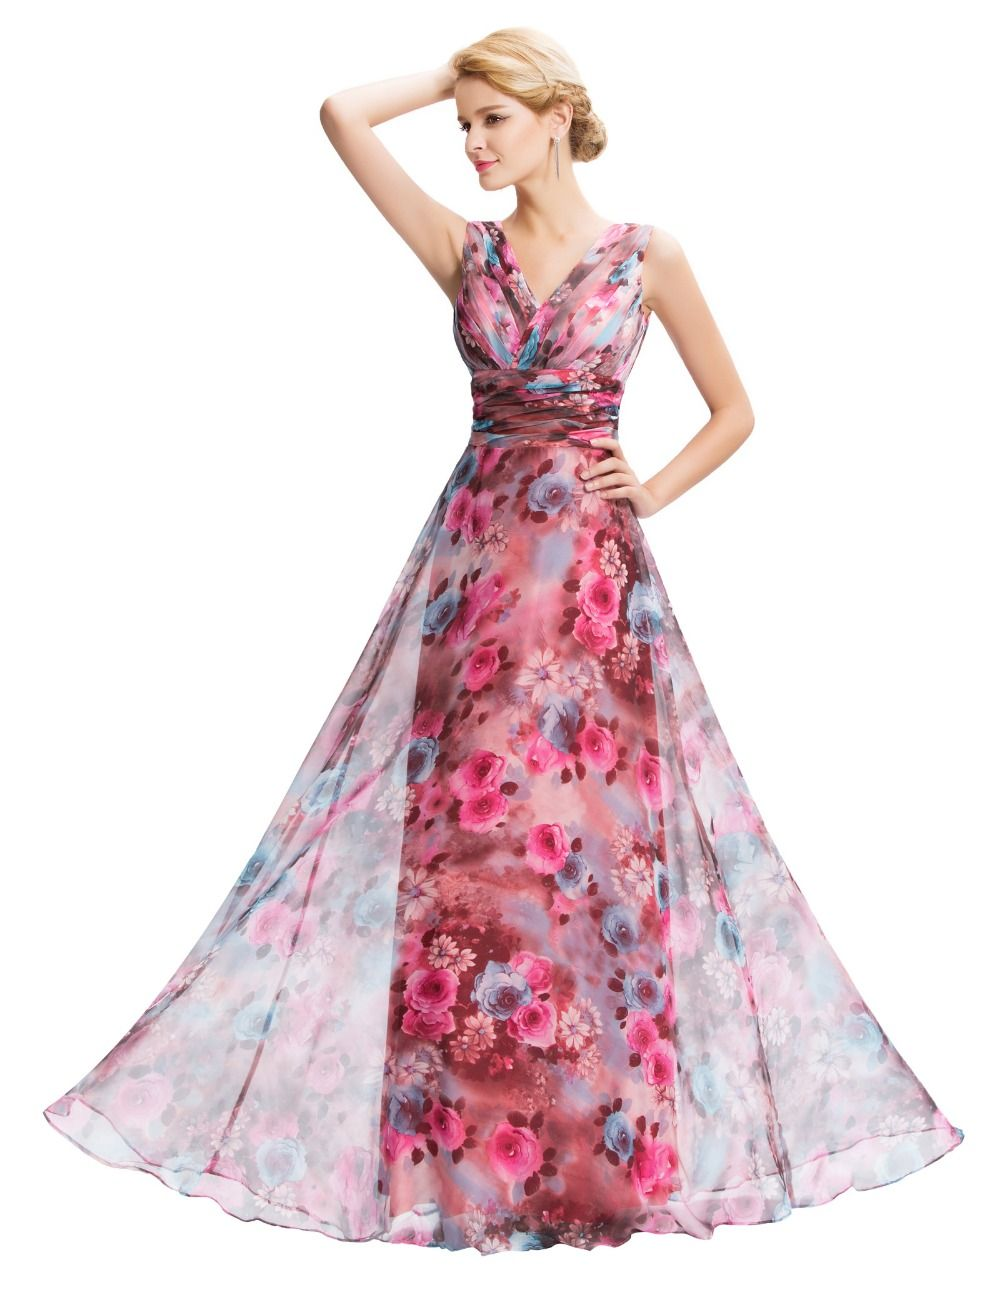 New floral print evening dresses long v neck chiffon party gowns